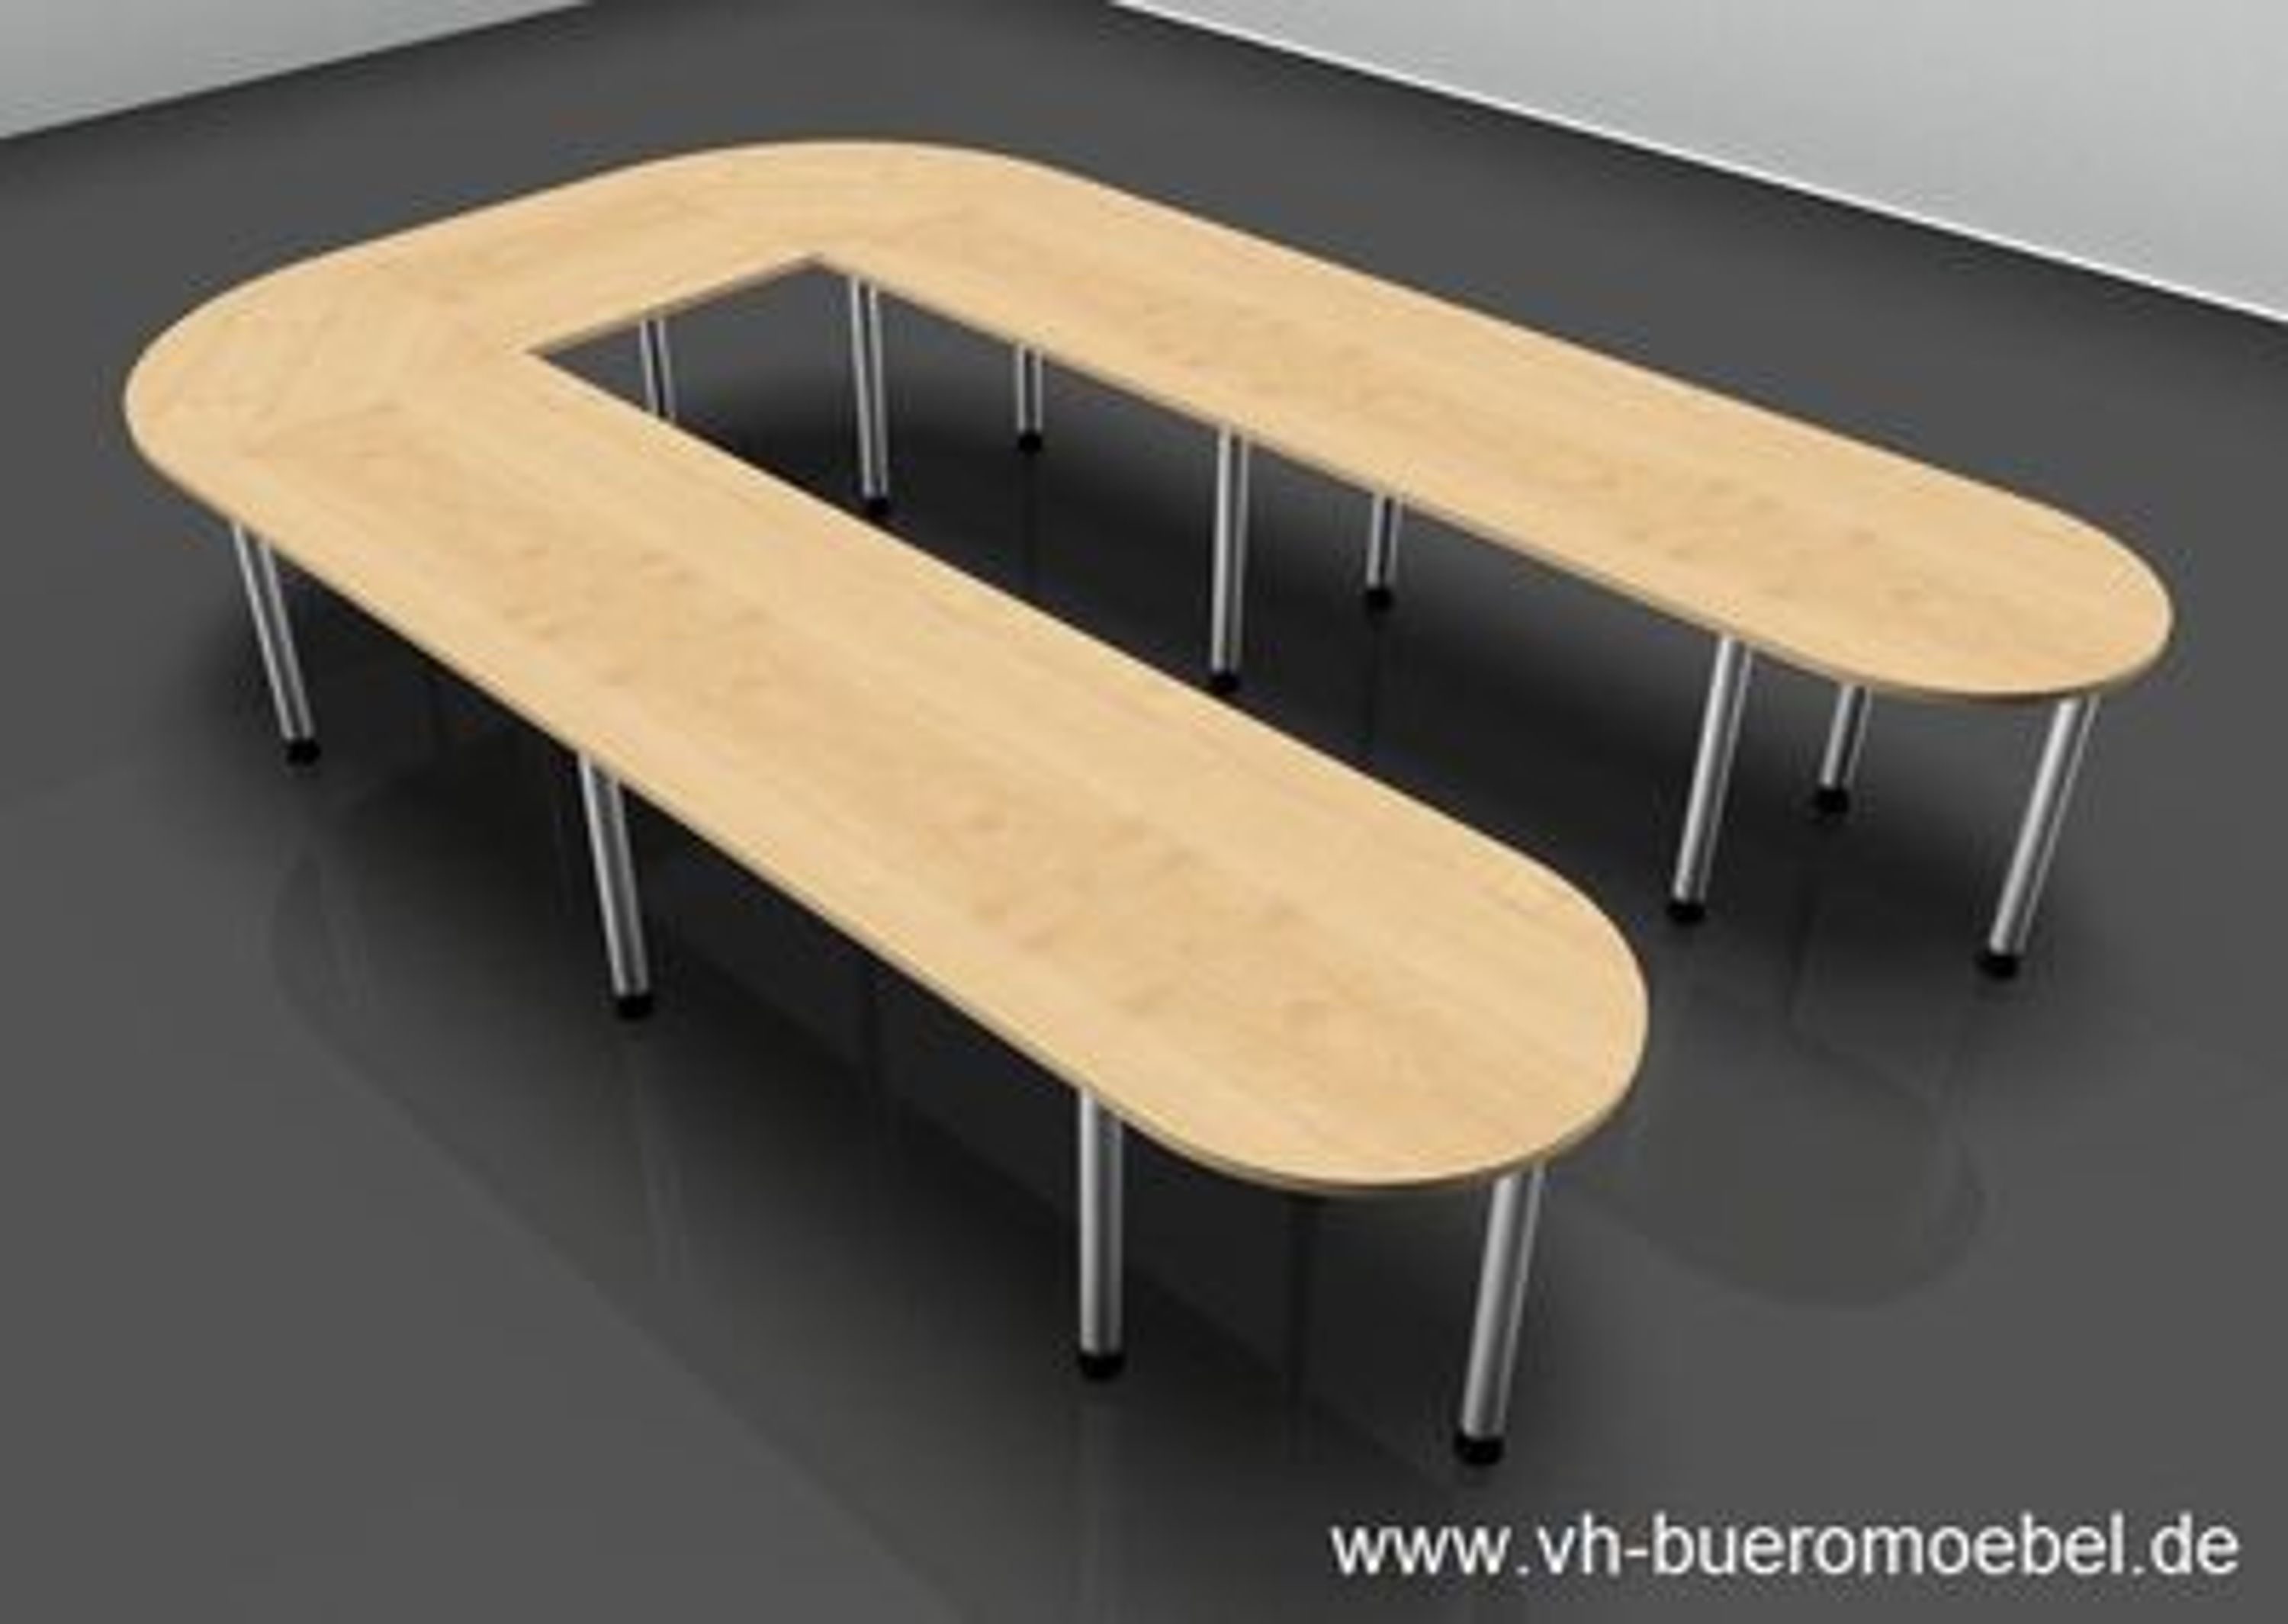 konferenztisch besprechungstisch u form schulungstisch tisch 380 cm kaufen bei. Black Bedroom Furniture Sets. Home Design Ideas